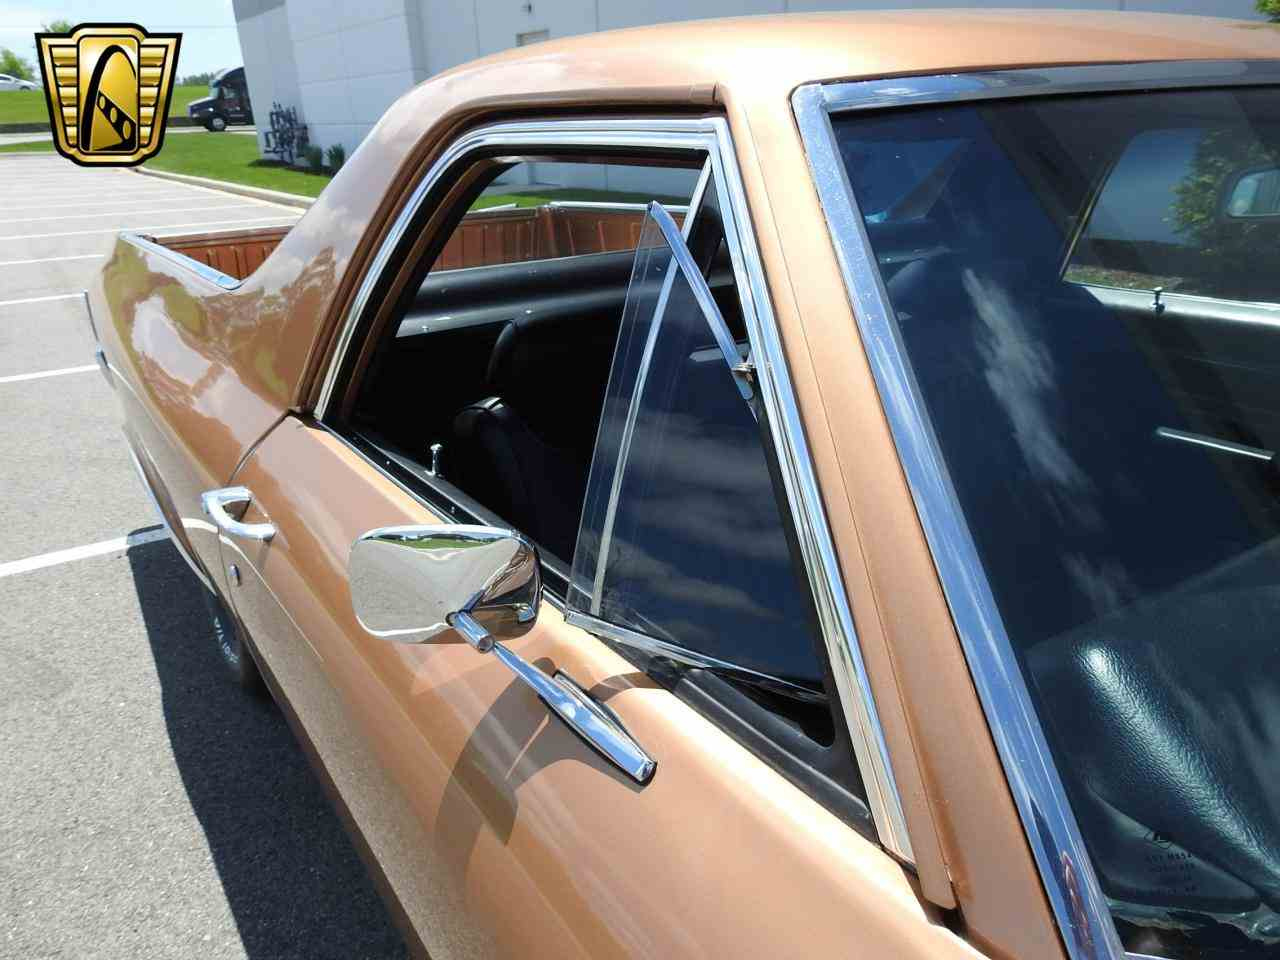 Large Picture of '72 GMC Sprint located in Kenosha Wisconsin - $29,995.00 Offered by Gateway Classic Cars - Milwaukee - L8EJ